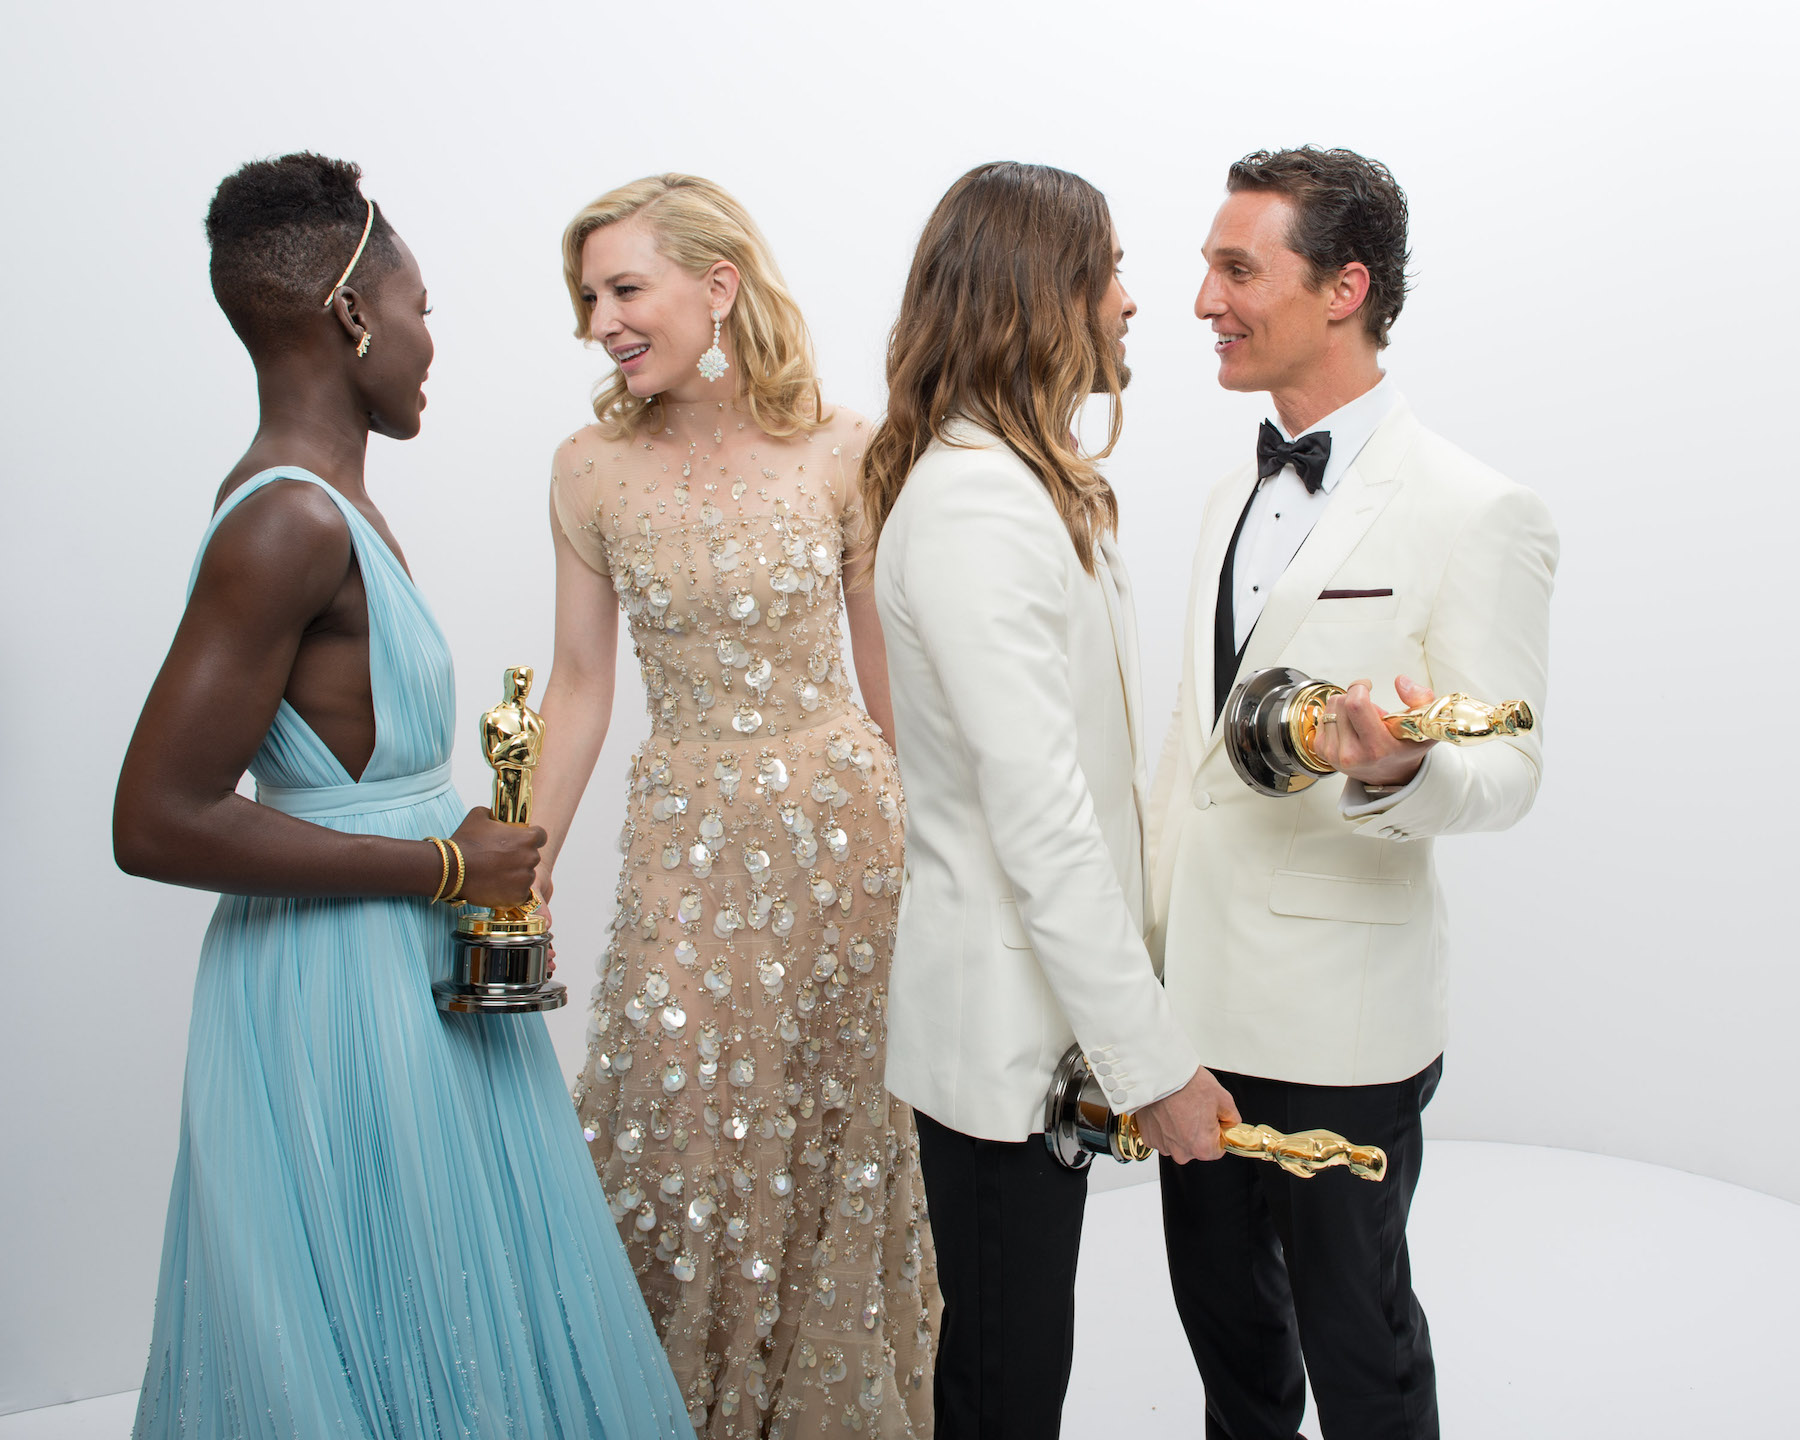 2014 Academy Awards ceremony: Oscar winners Lupita Nyong'o for Actress in a Supporting Role for her work in `12 Years a Slave`, Cate Blanchett for Actress in a Leading Role for her role in `Blue Jasmine`, Jared Leto for Performance by an Actor in a Supporting Role for his role in `Dallas Buyers Club` and Matthew MacConaughey for Performance by an Actor in a Leading Rule for his role in `Dallas Buyers Club`, pose backstage with their Oscars. (photo by Todd Wawrychuk/©A.M.P.A.S.)